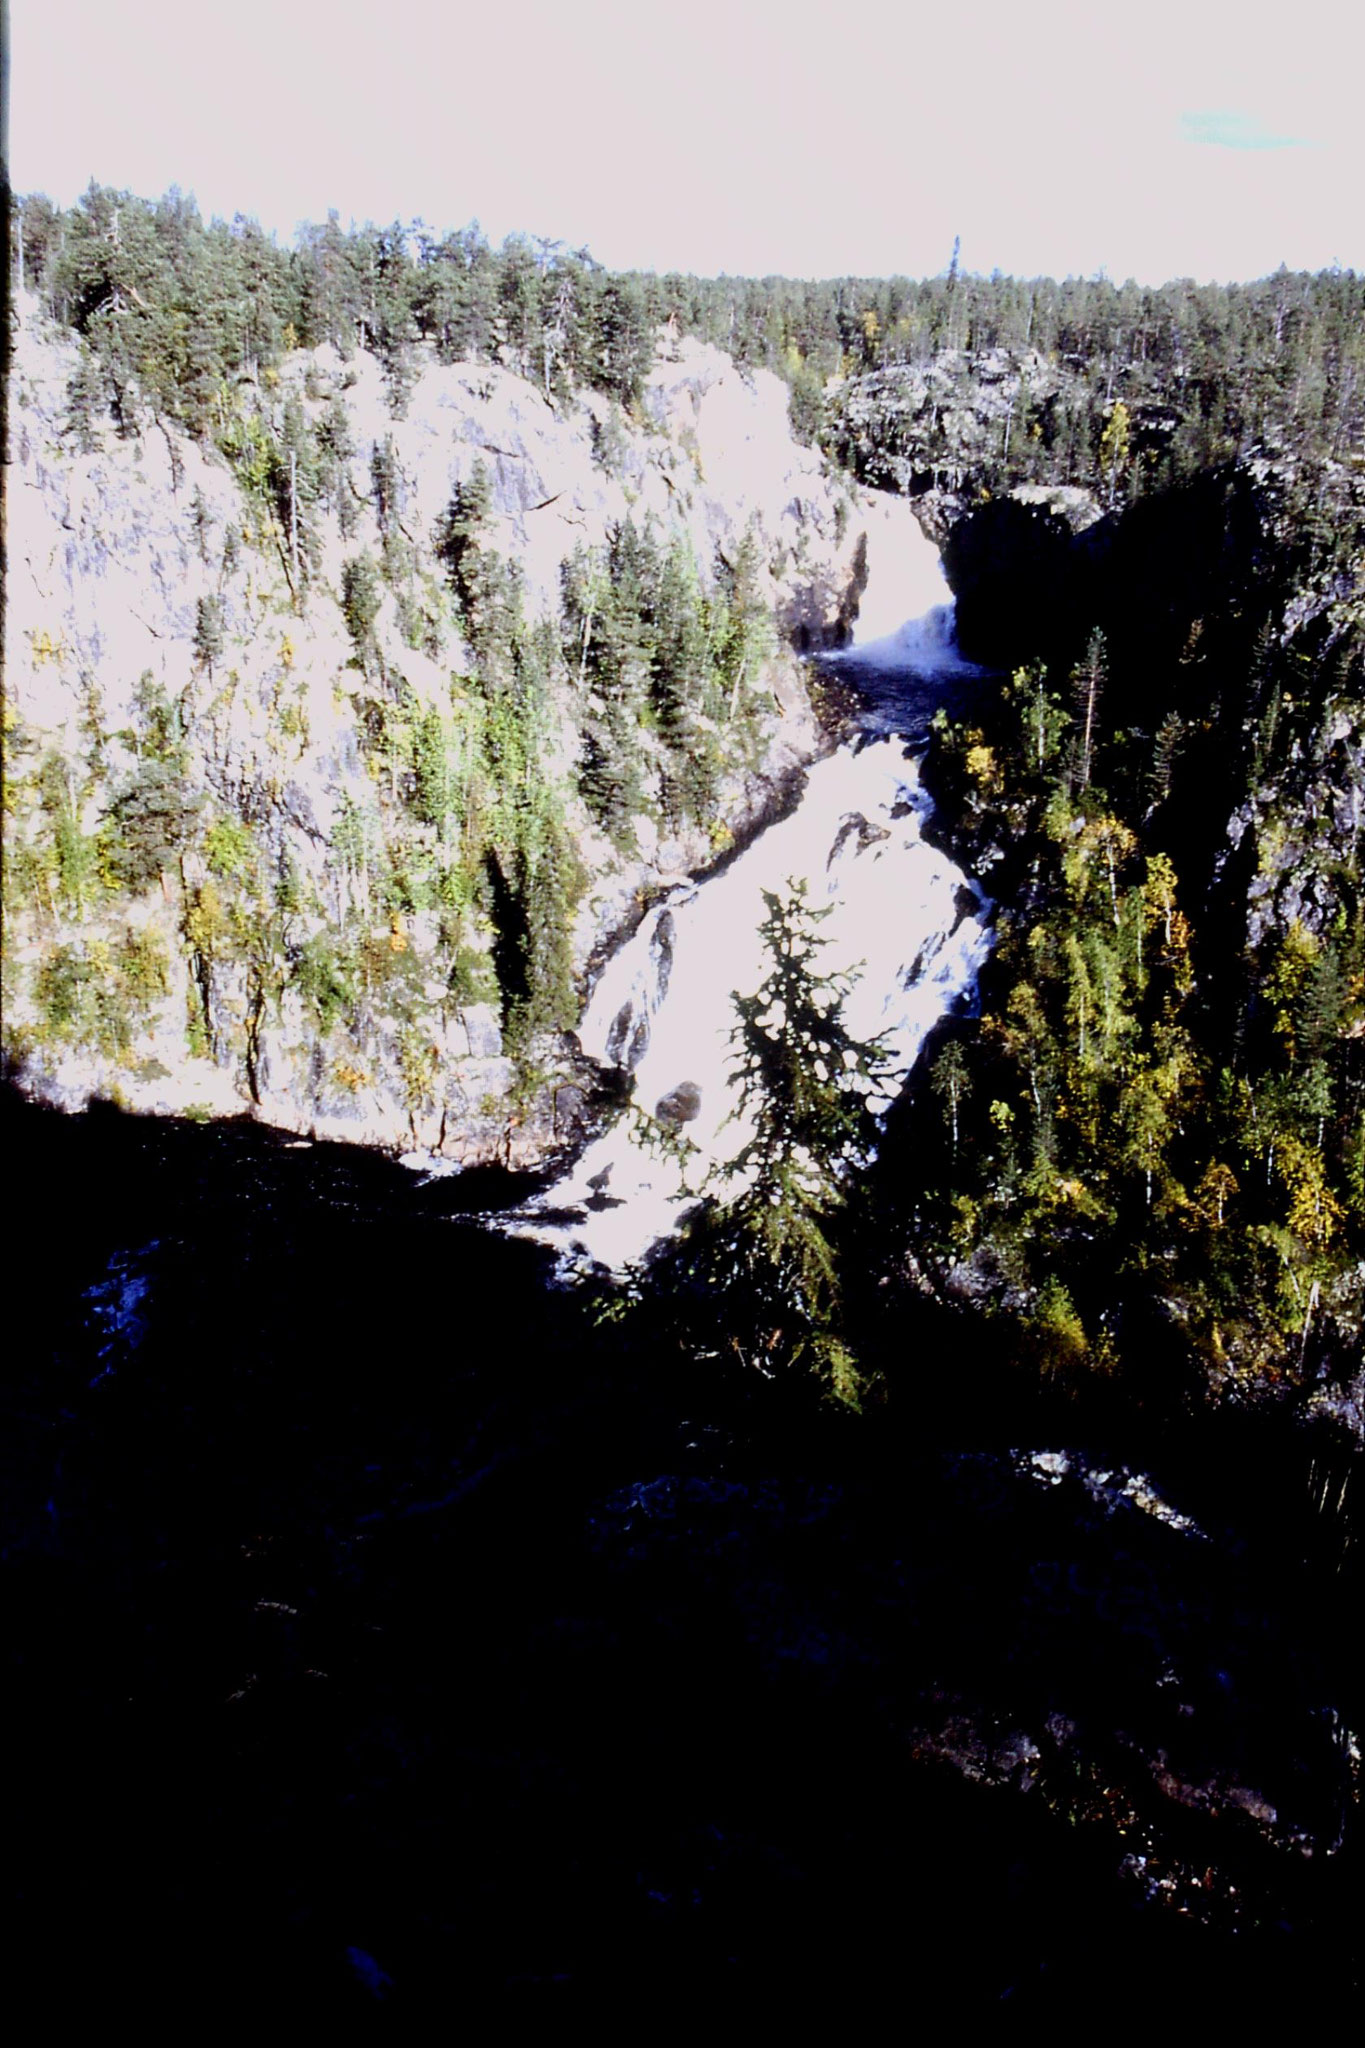 11/9/1988: 3: Muddus waterfall